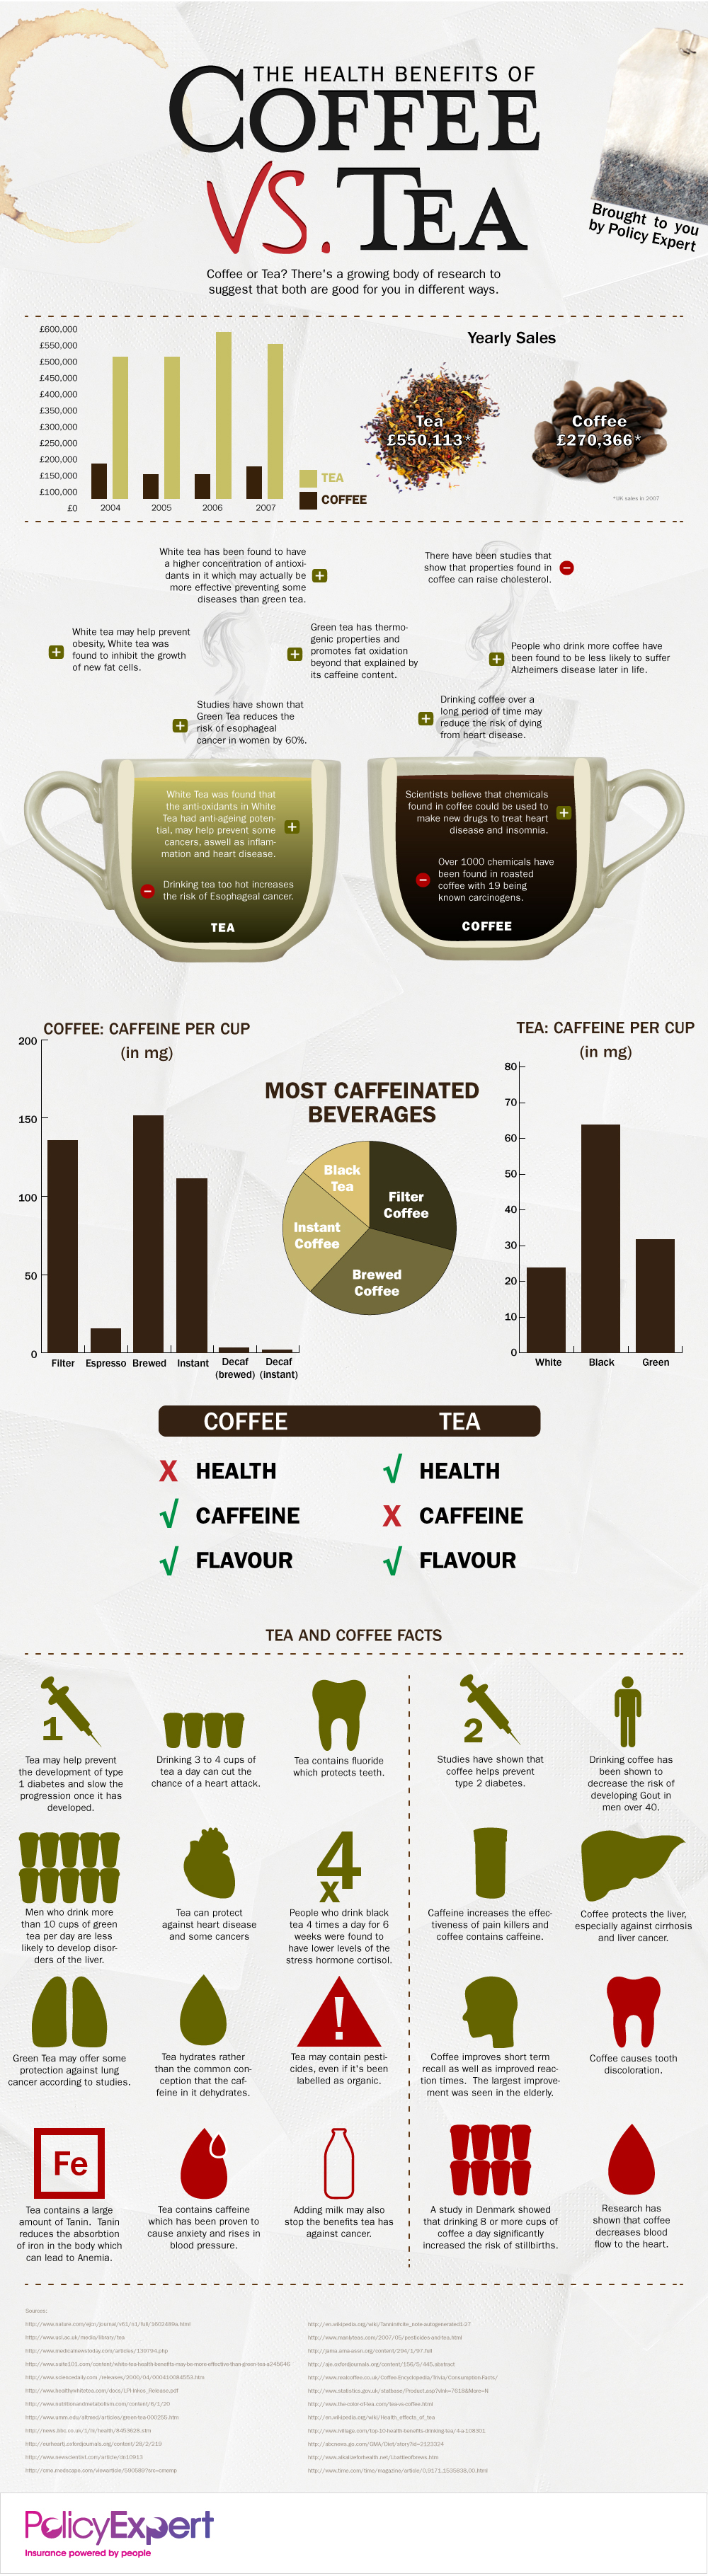 coffee vs tea The Health Benefits of Tea vs. Coffee [INFOGRAPHIC]